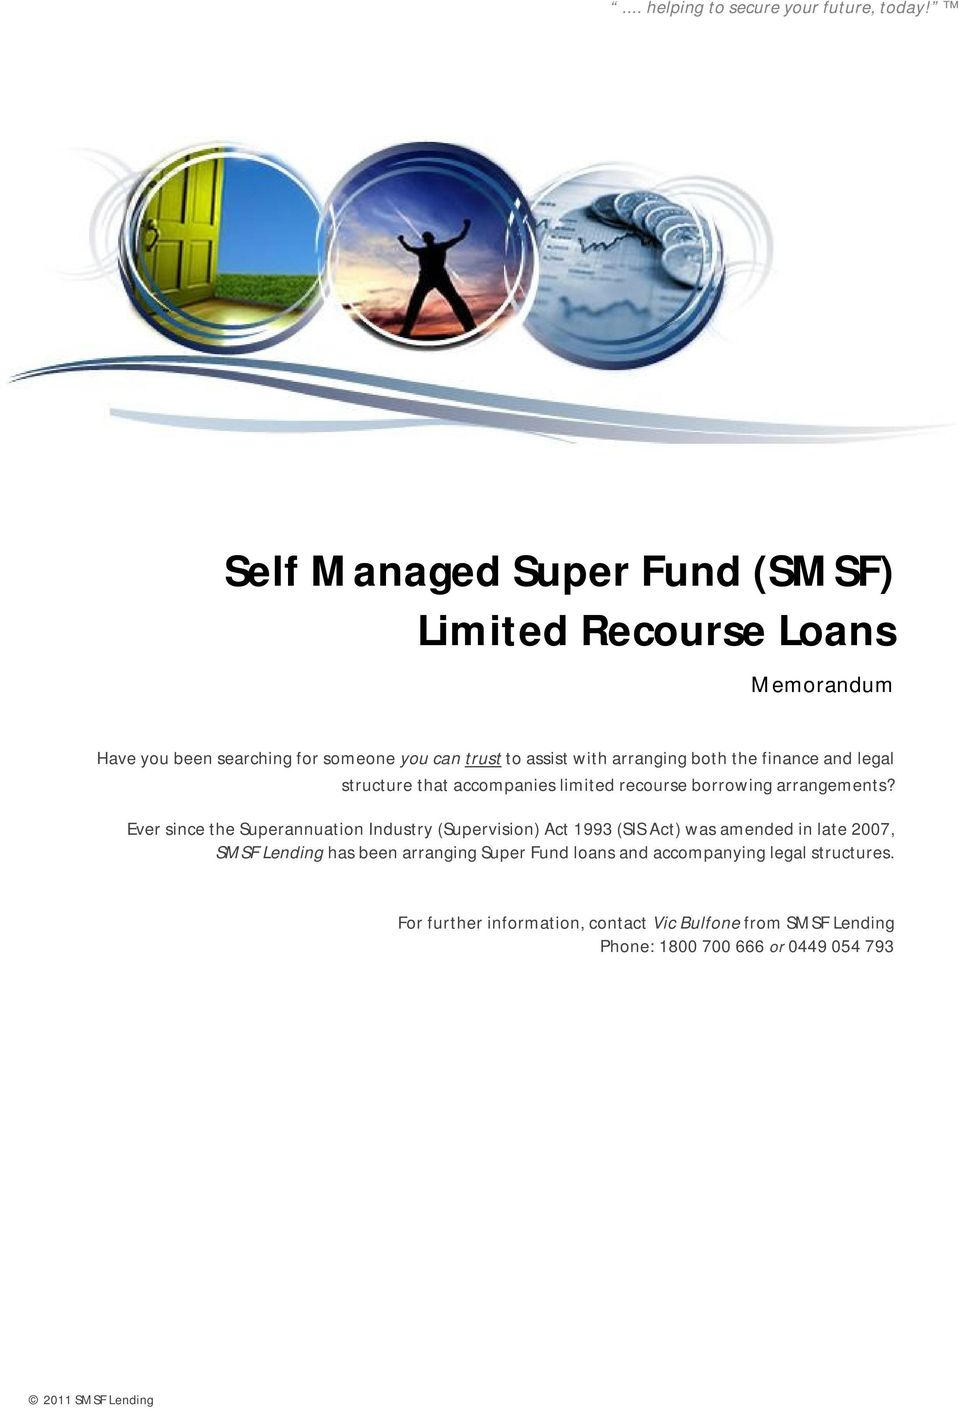 Ever since the Superannuation Industry (Supervision) Act 1993 (SIS Act) was amended in late 2007, SMSF Lending has been